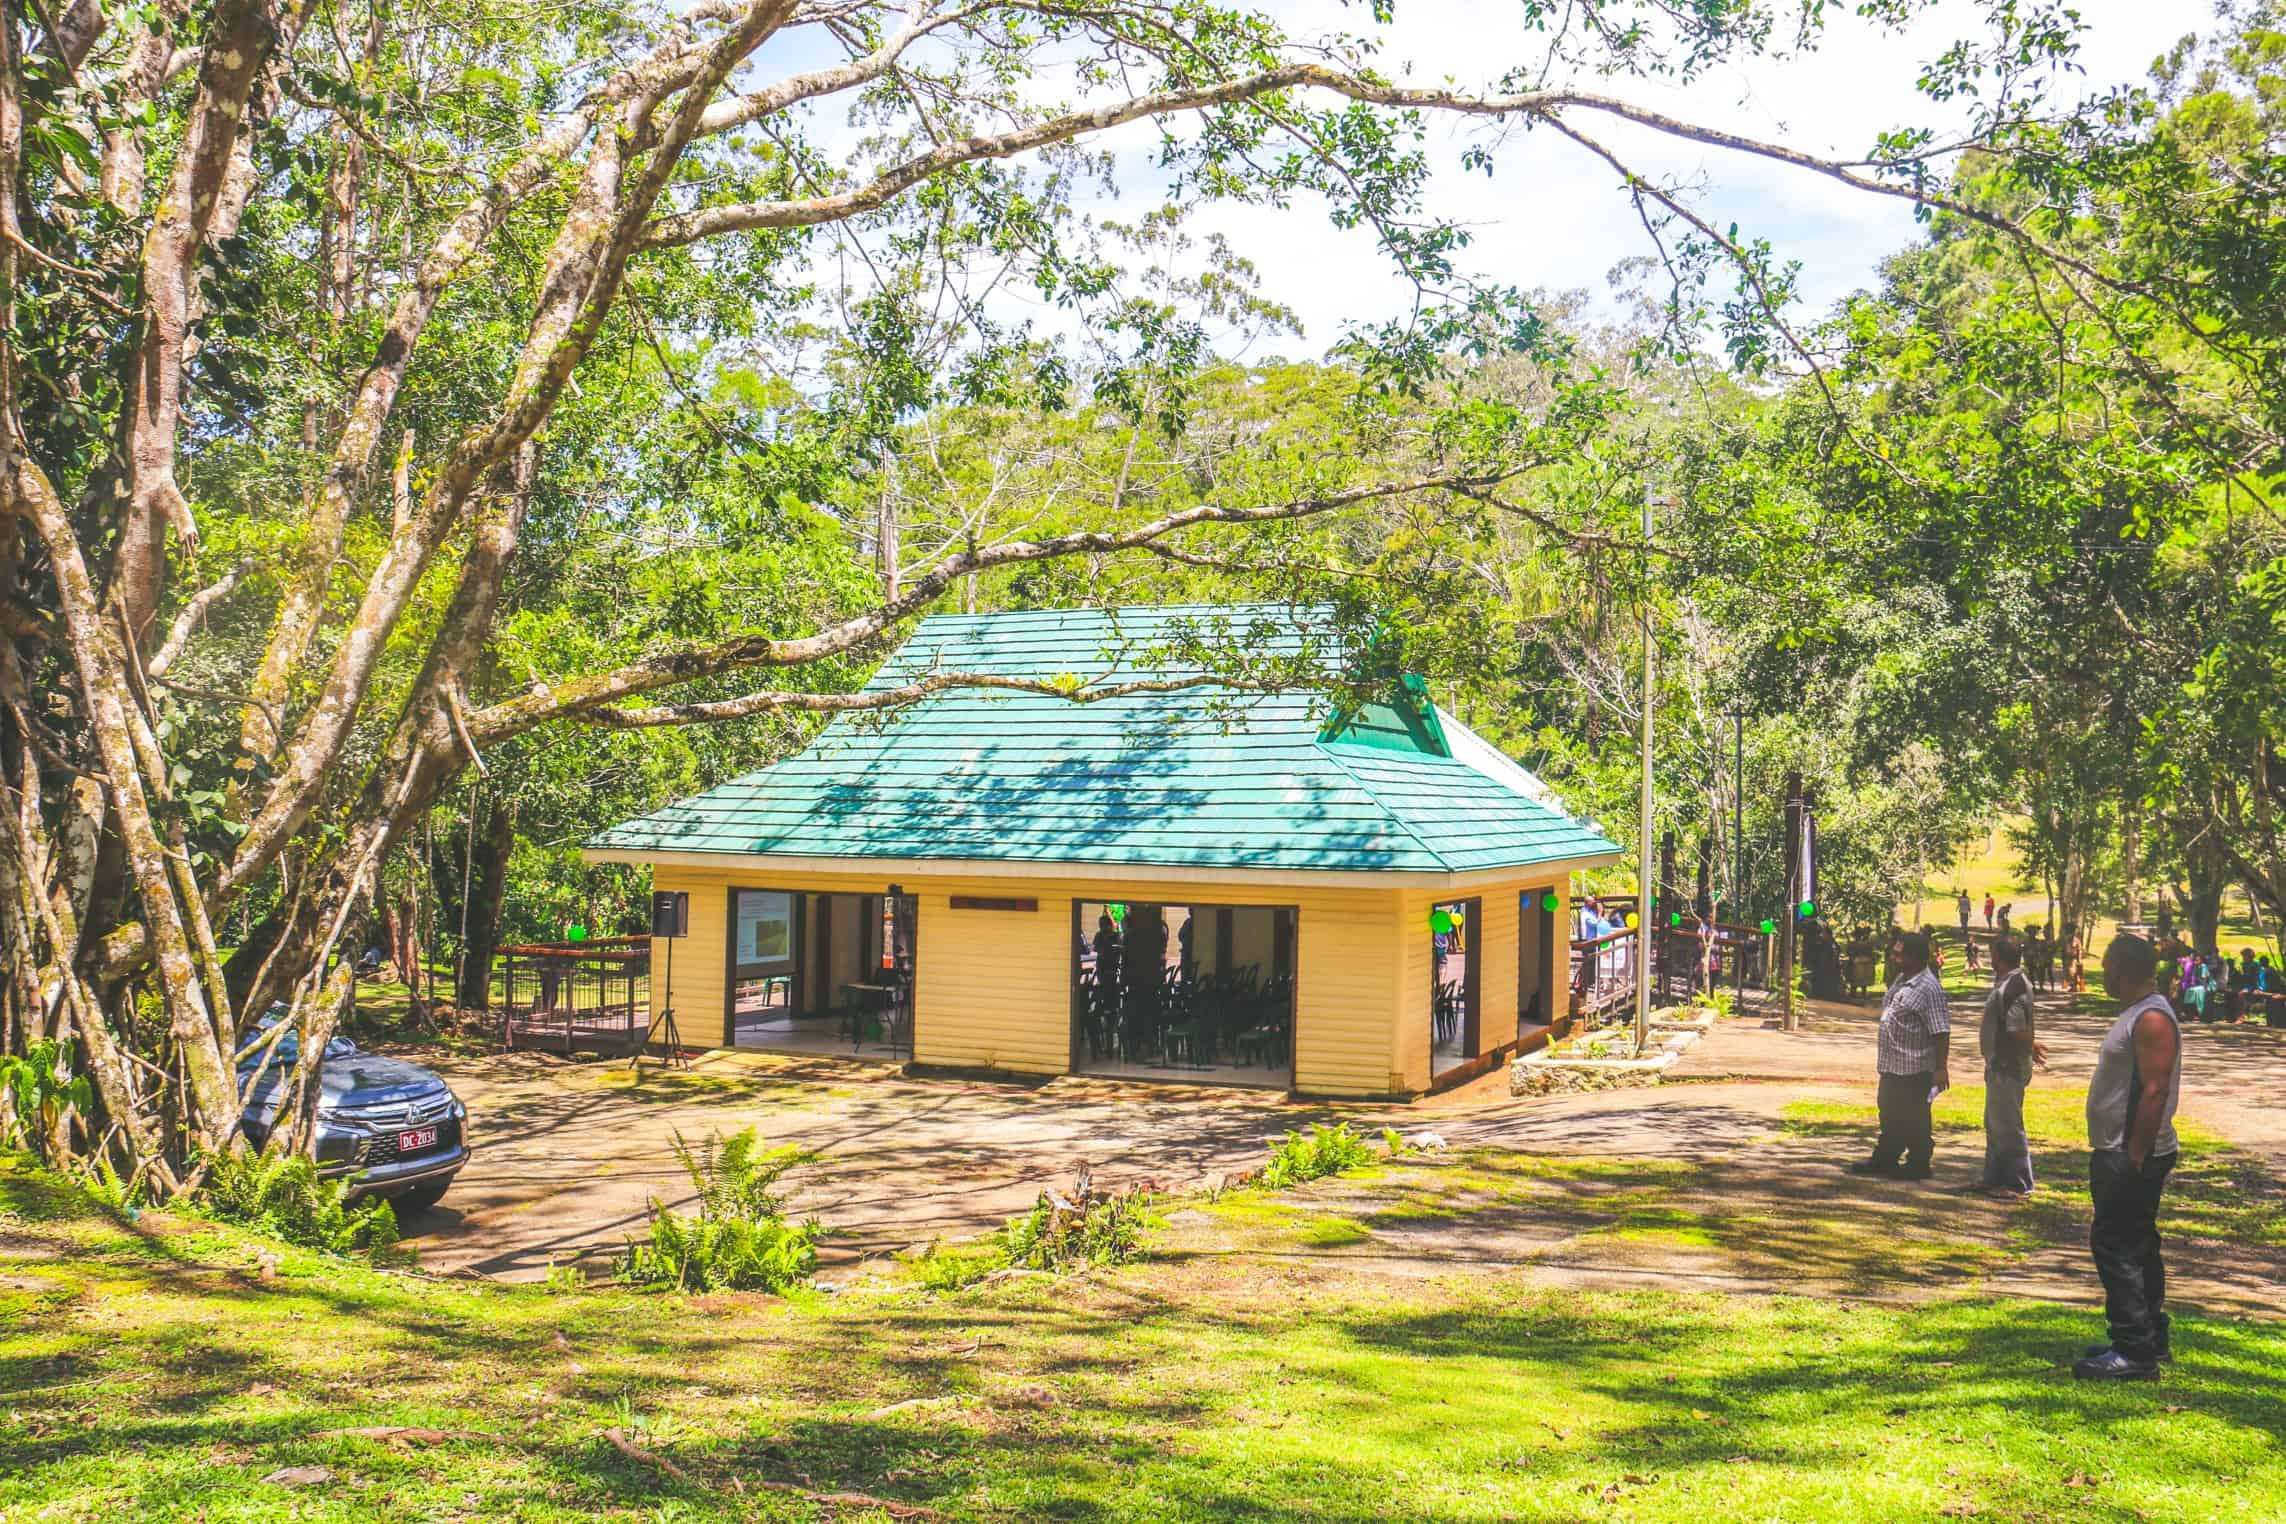 Varirata National Park Information Building